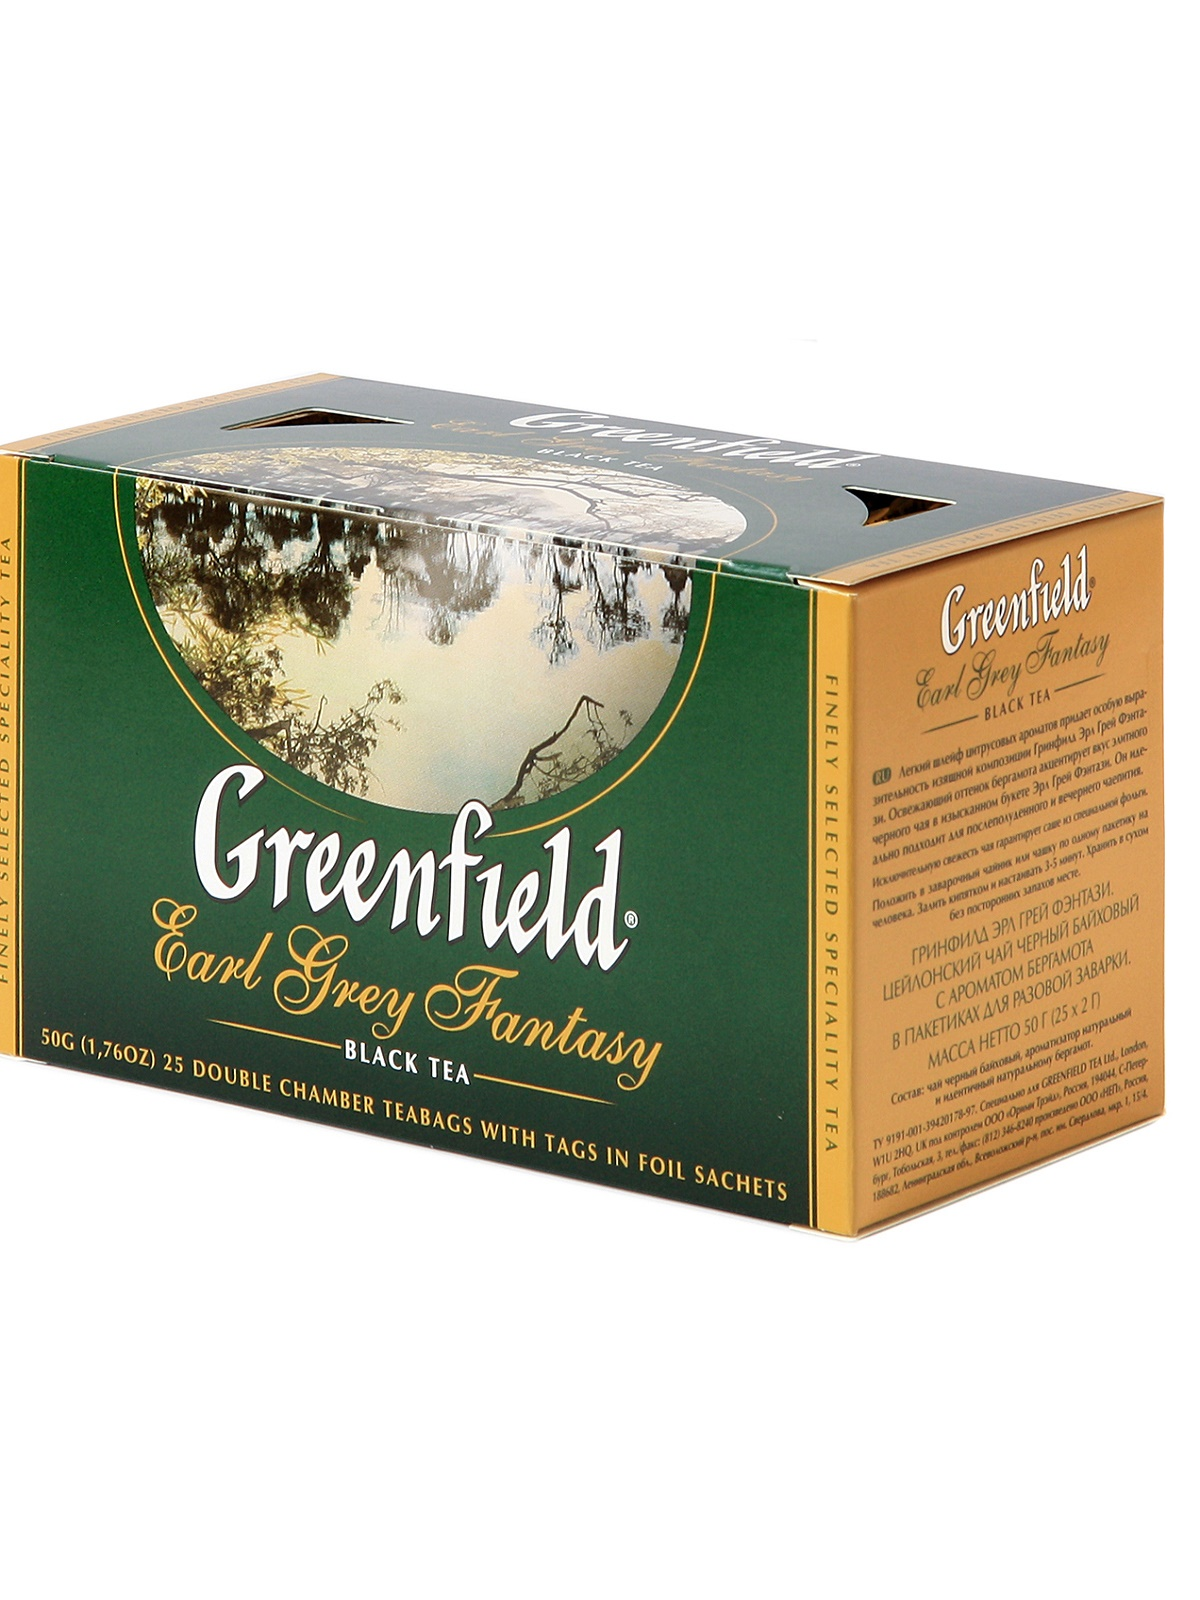 GREENFIELD EARL GREY FANTASY TEA 25 filer